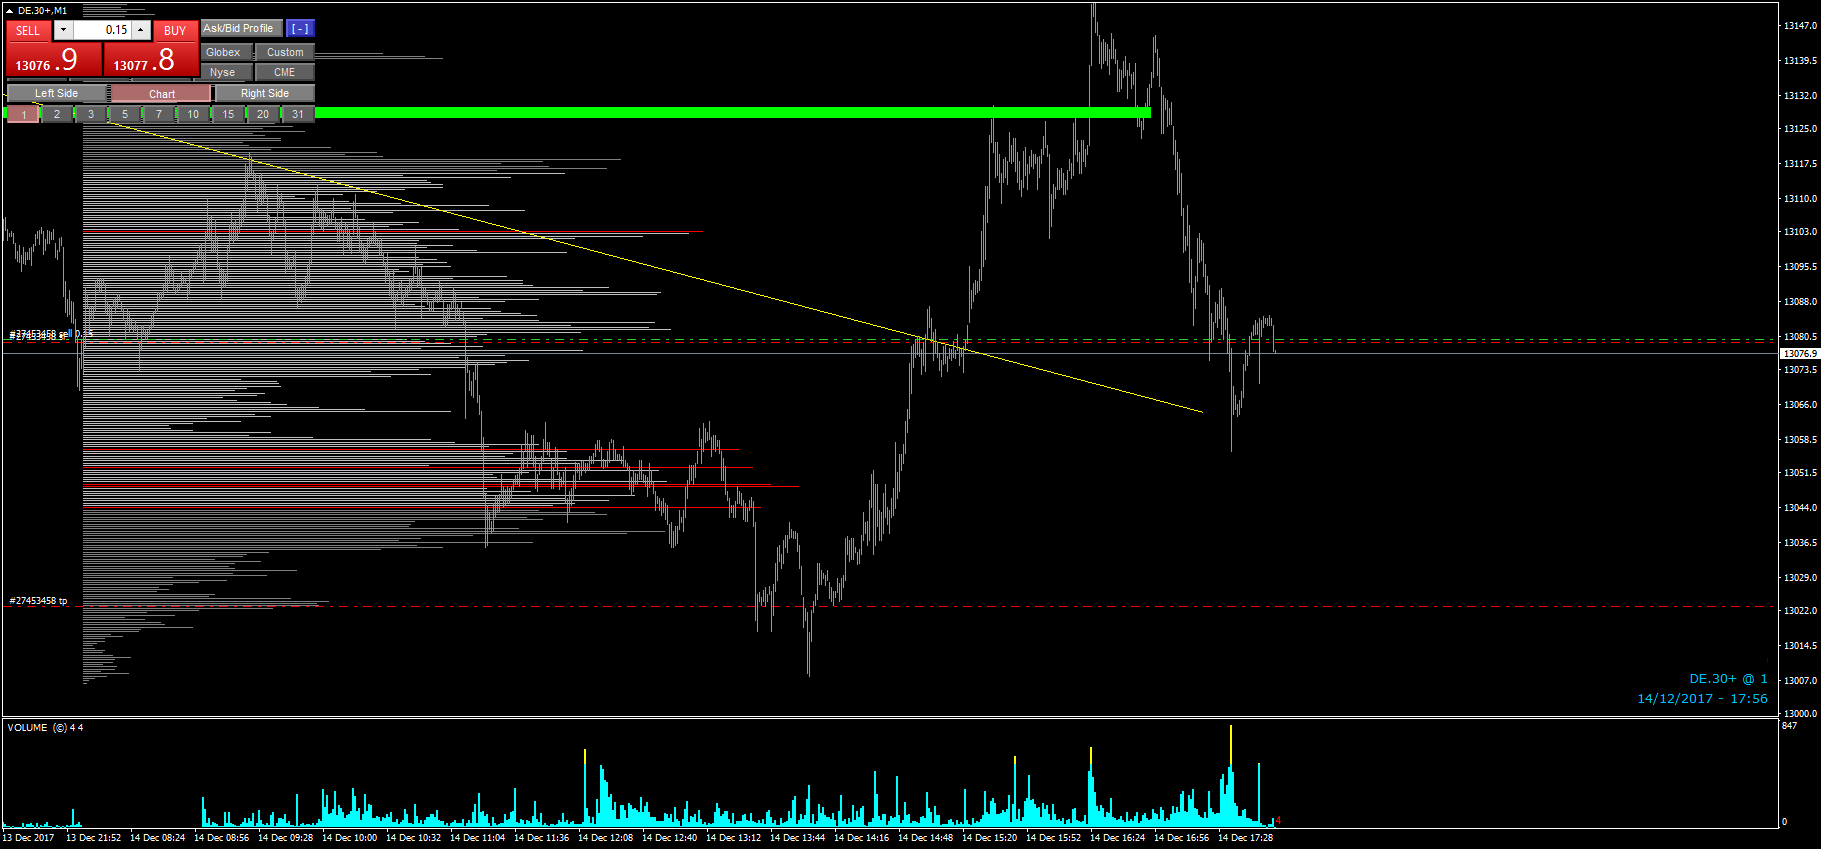 dax30-trading-room